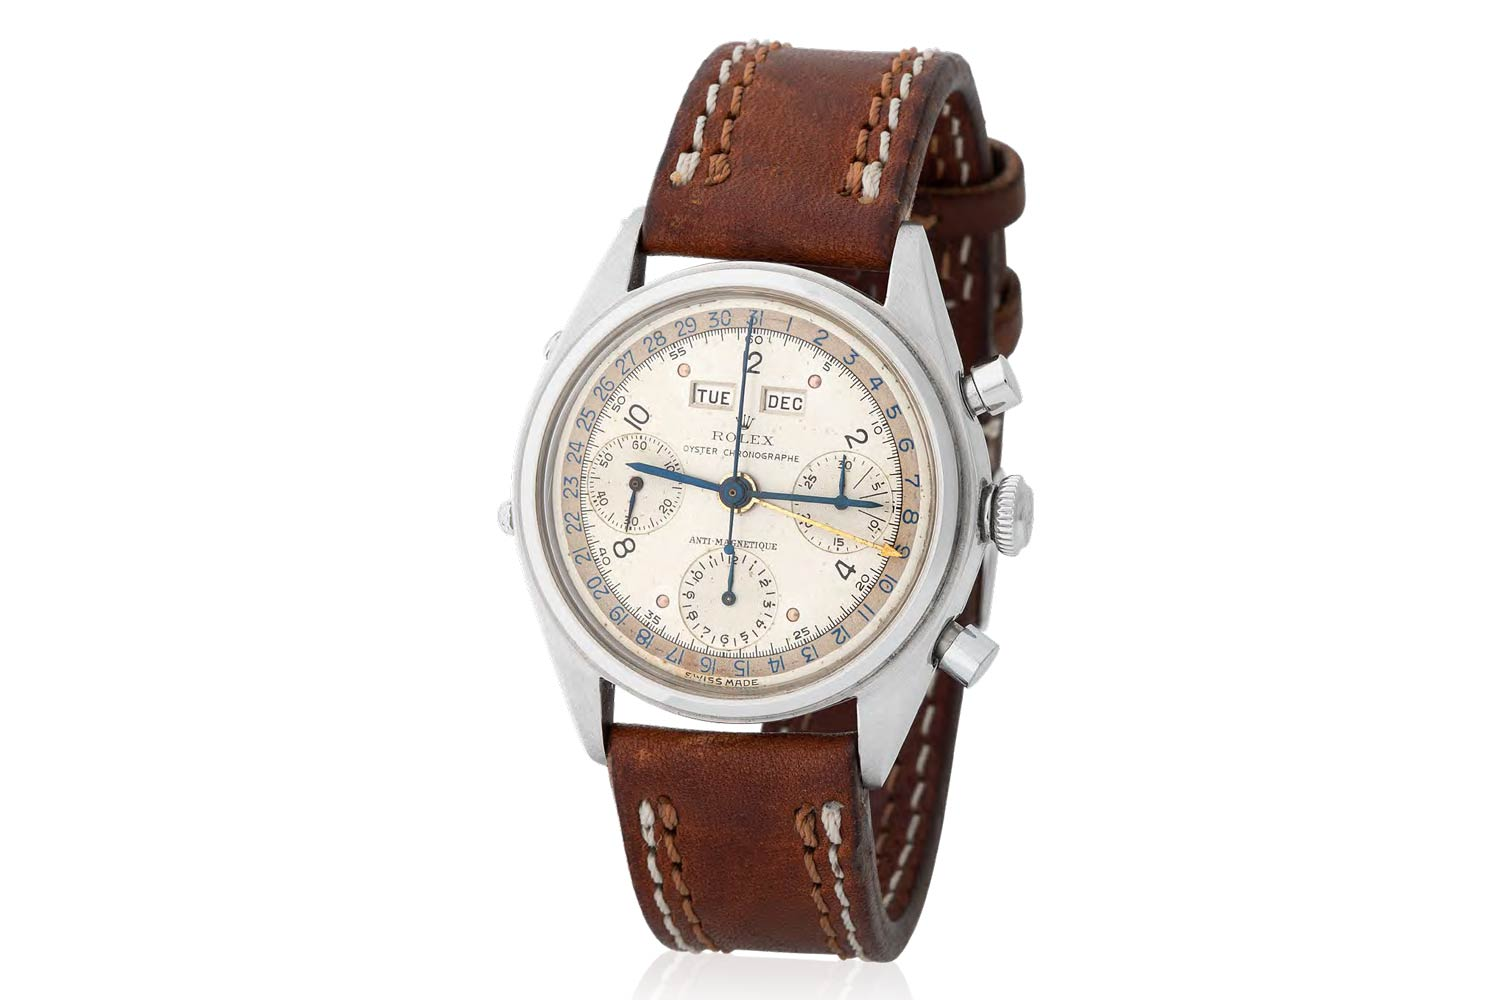 Lot 194 Rolex: Extremely rare, sought-after and historically important, Jean-Claude Killy, triple calendar chronograph wristwatch in steel, reference 4767, with two-tone dial and enamel arabic numbers